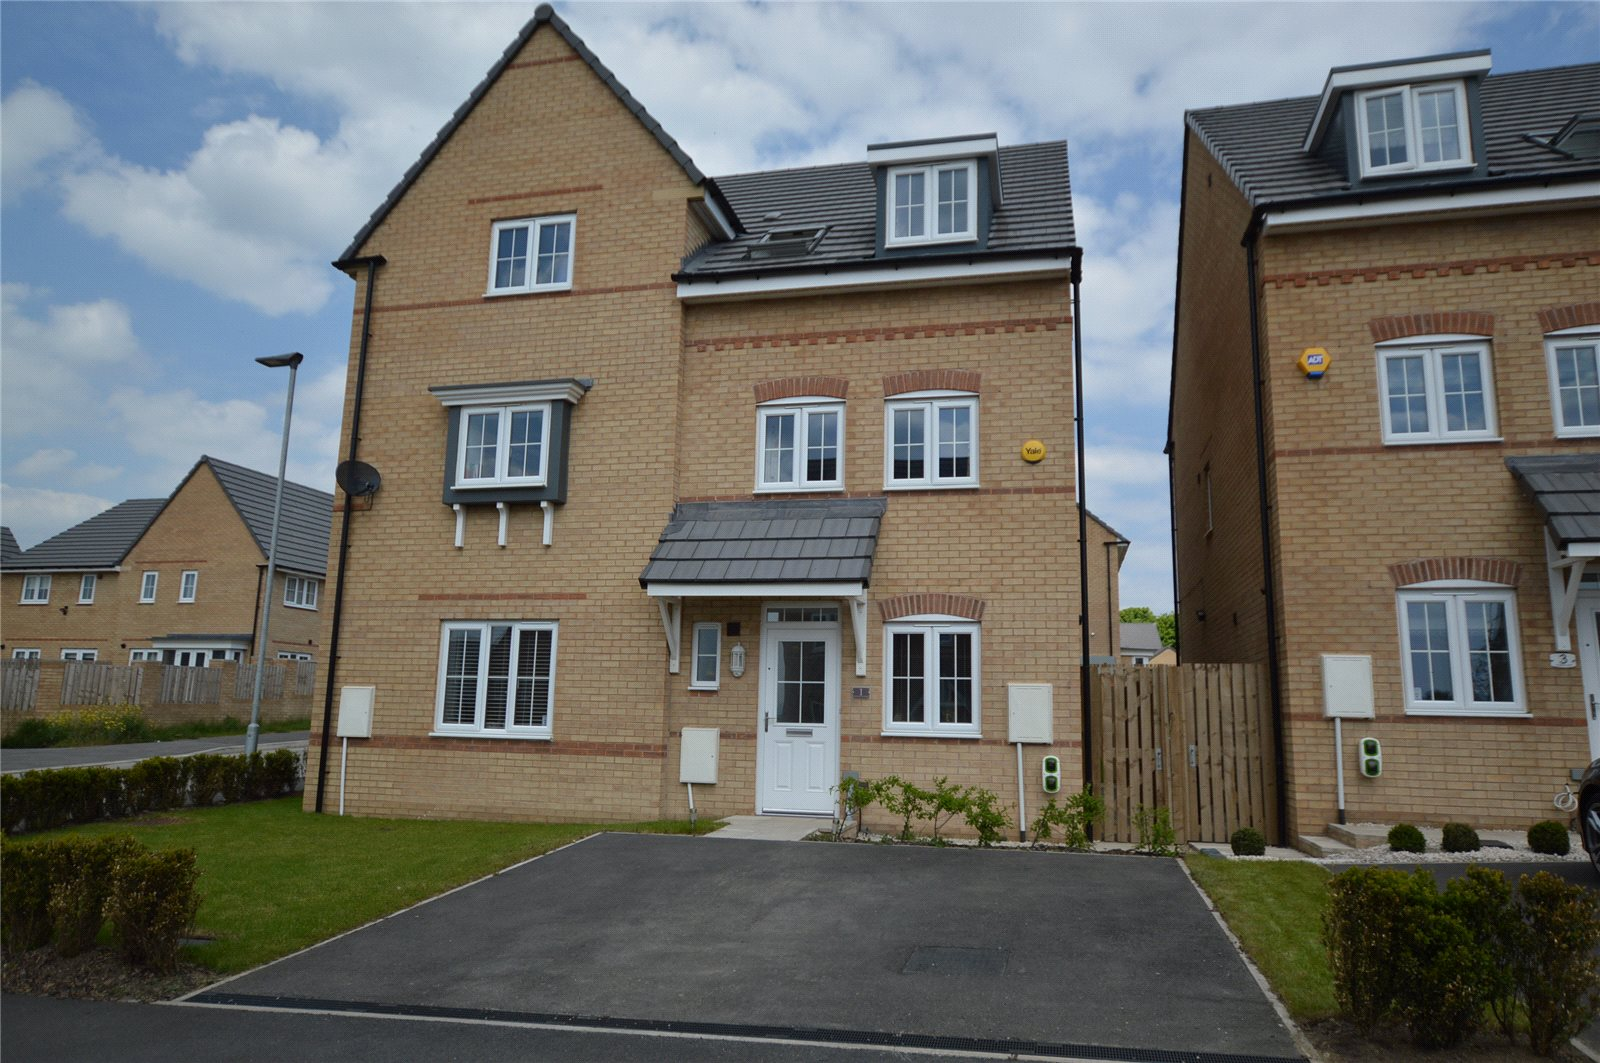 Property for sale in Morley, exterior detached, three floor home